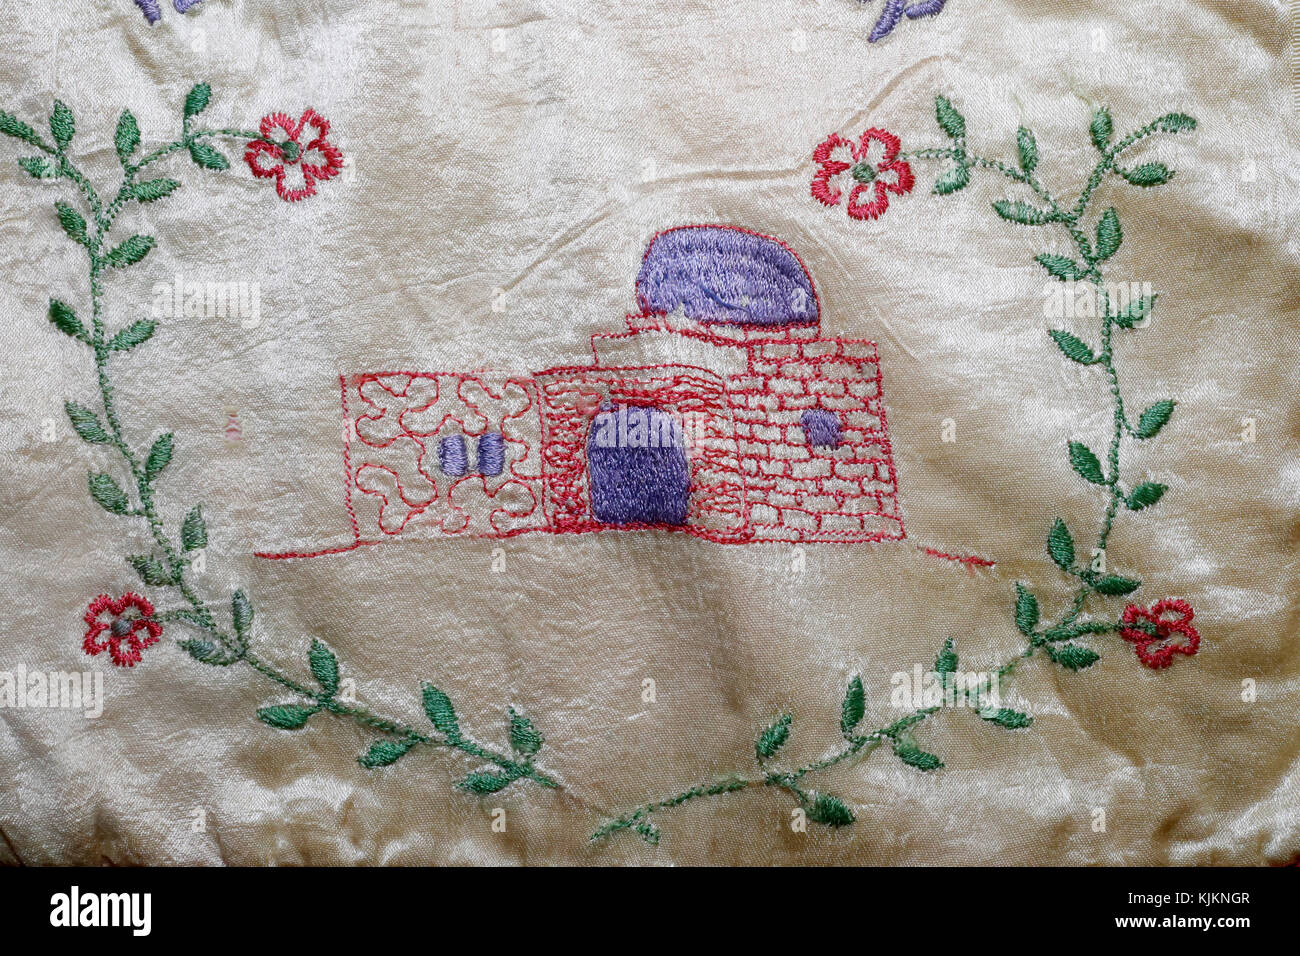 Old embroidered Talilit matching bag.  Rachel's Tomb.  Switzerland. - Stock Image